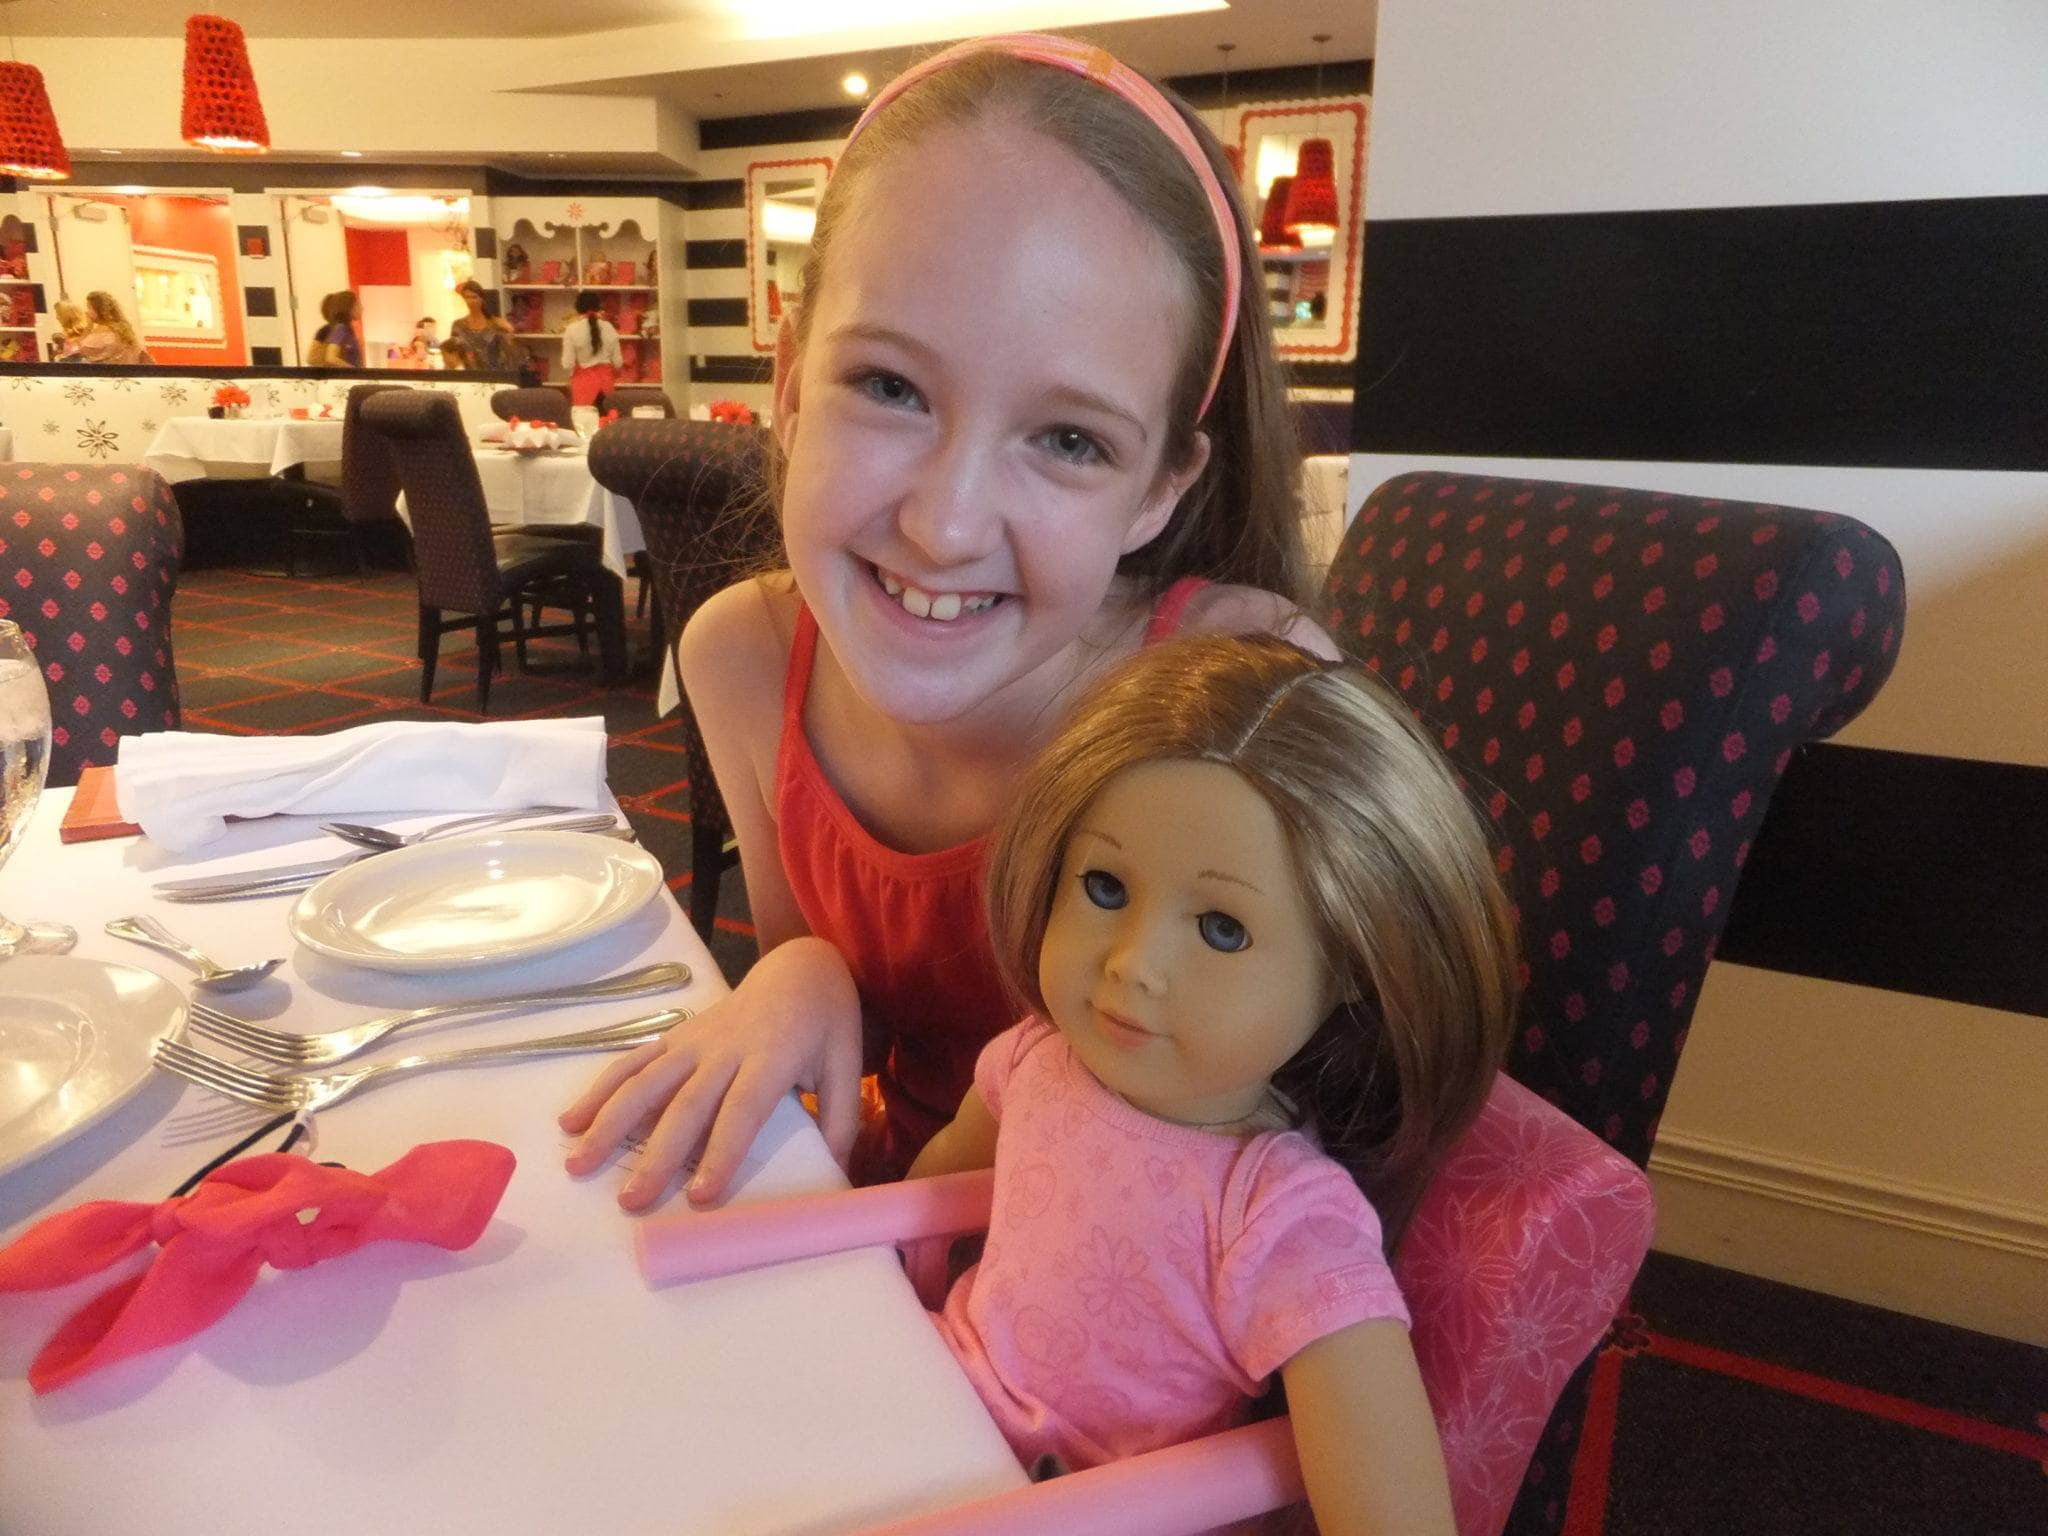 Dining at the American Girl Cafe in Chicago